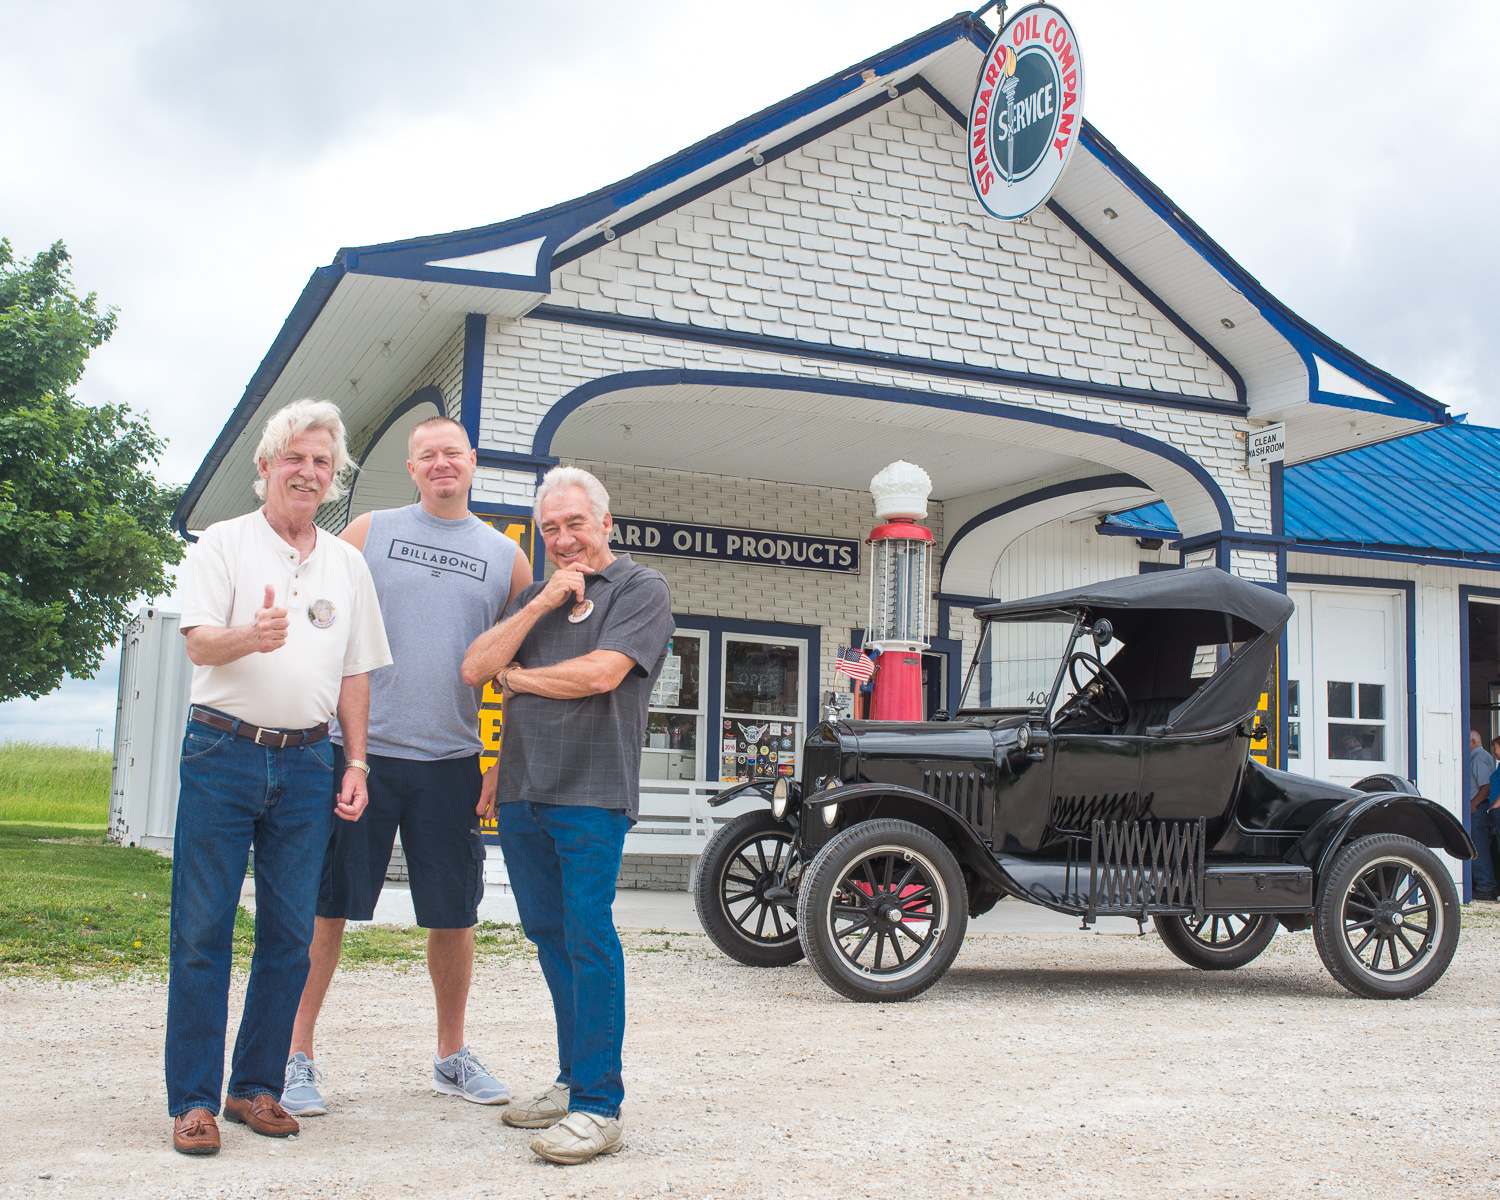 Craig Parrish, the event organizer, John Weiss, 66 preservationist  and husband of Lenore, and Terry Joiner, The Mayor of Odell in front of Odell Station with a Ford Model T.